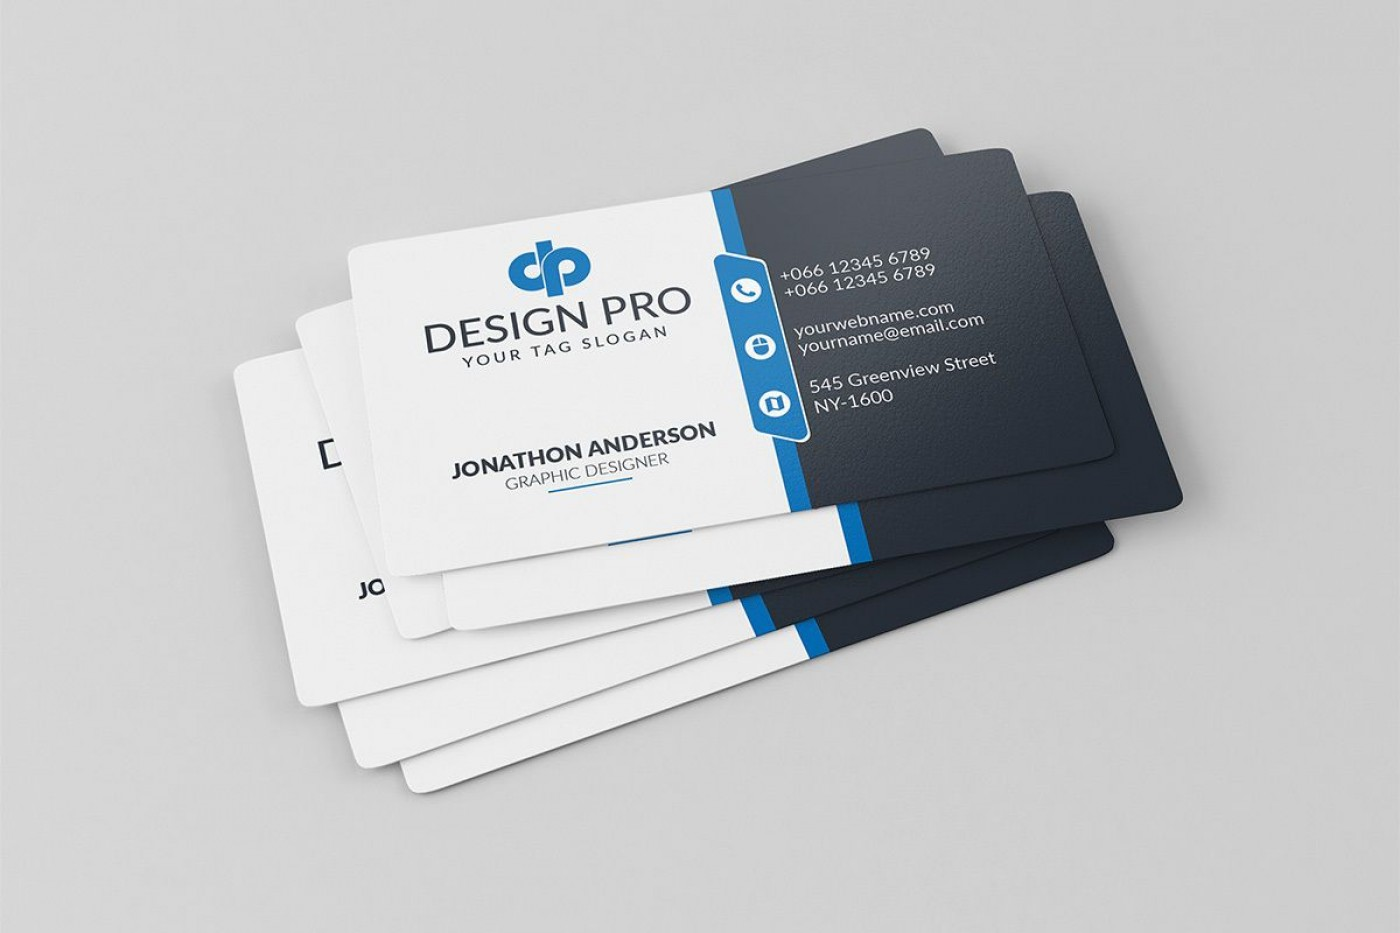 002 Simple Free Adobe Photoshop Busines Card Template Highest Clarity  Download1400